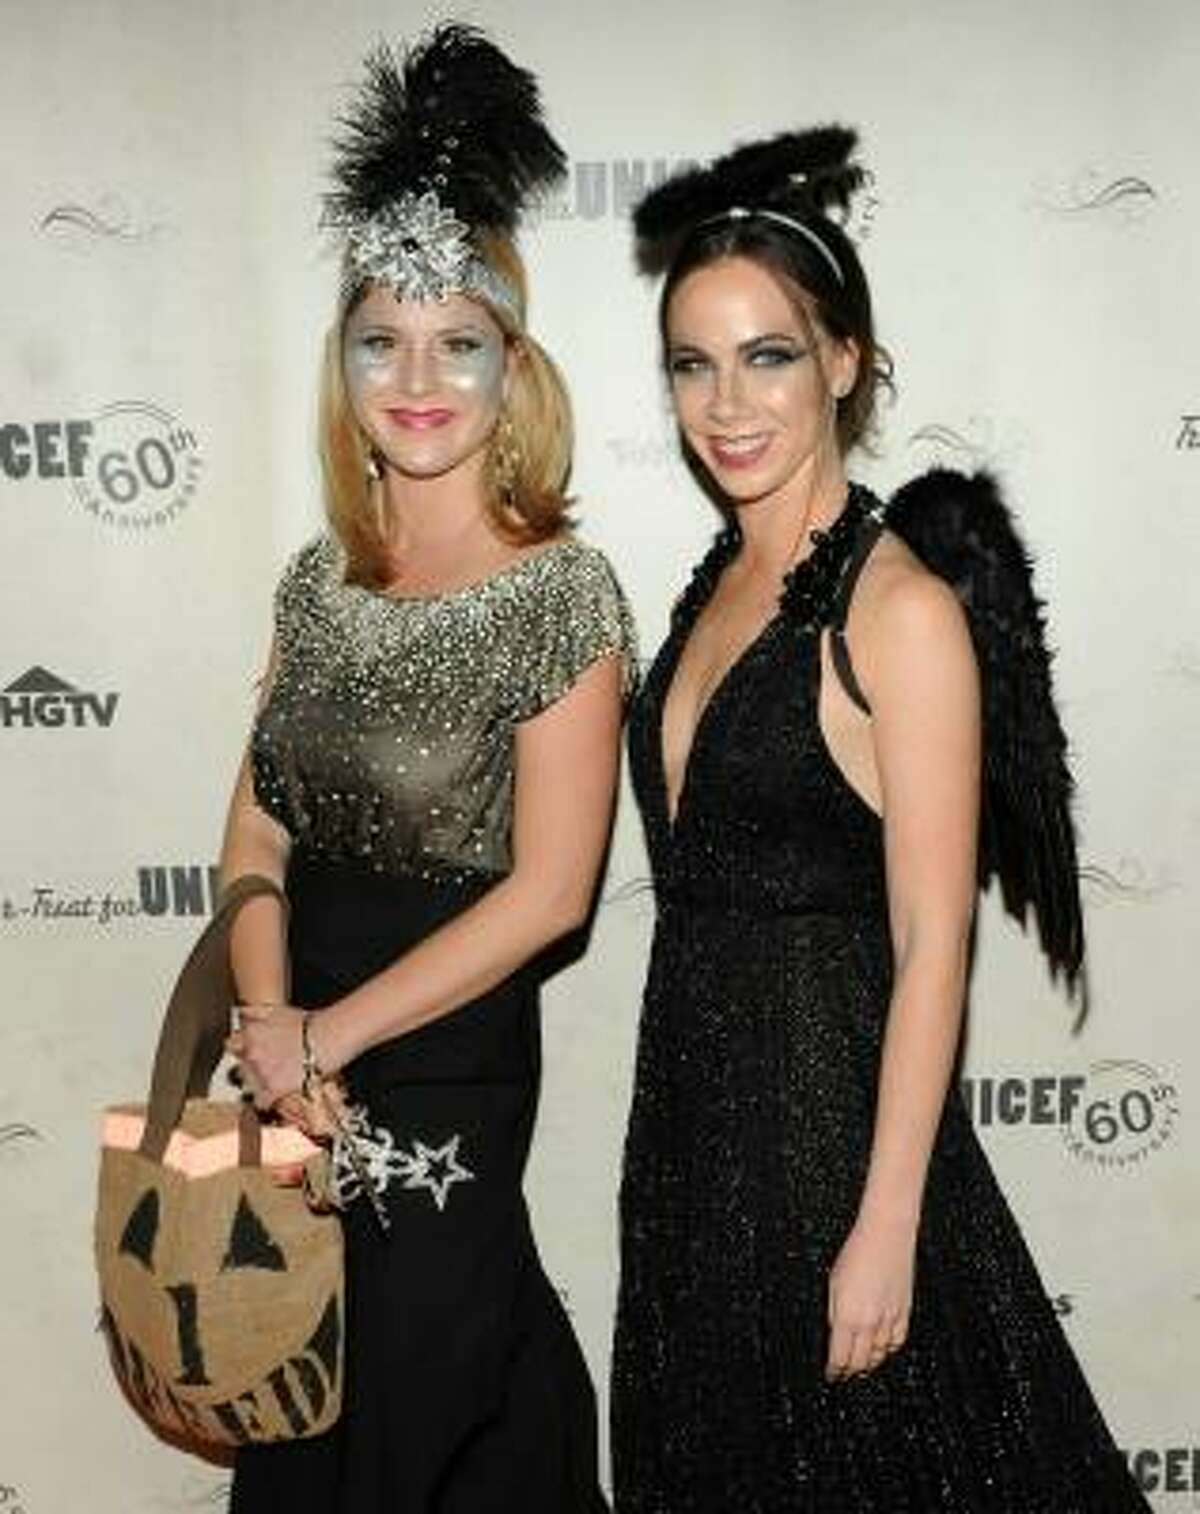 The young women look sparkly and glamorous as a flapper and fallen angel.